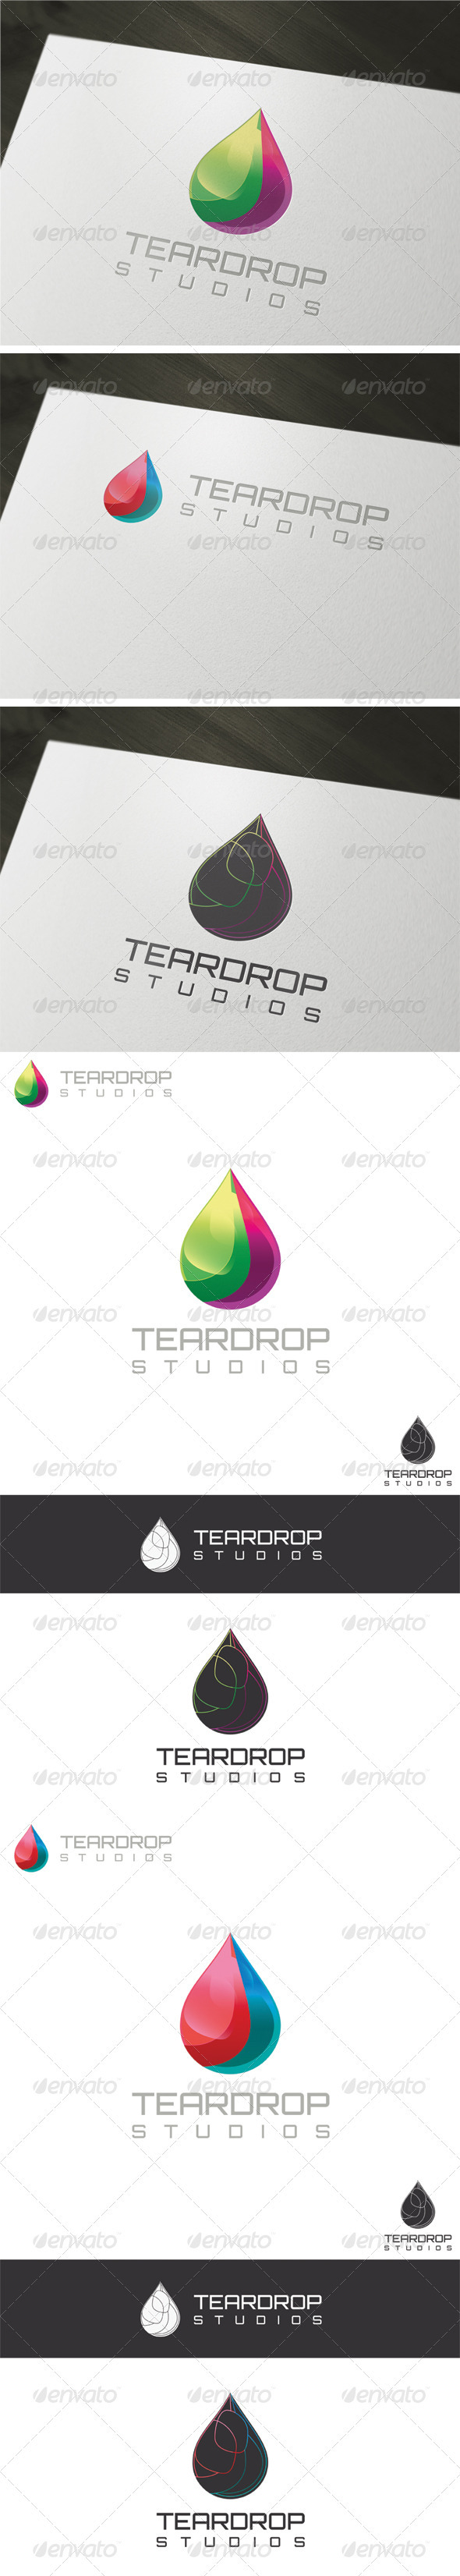 3D Teardrop Logo Template - Vector Abstract